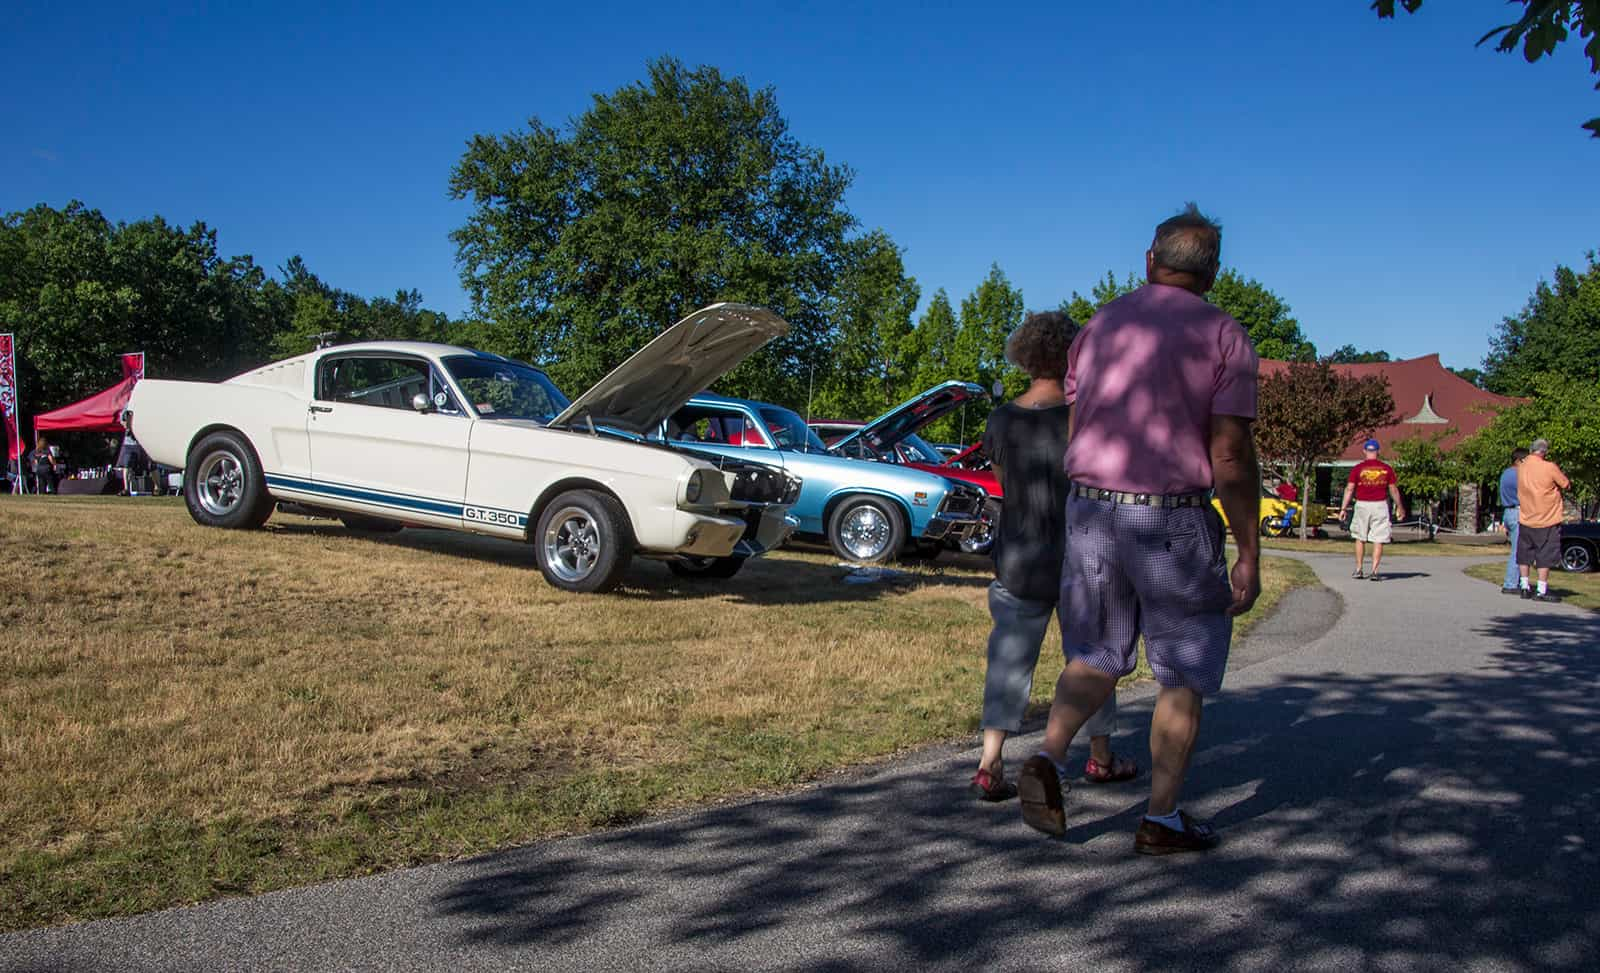 2016 Cars of Summer, Car Show in Worcester